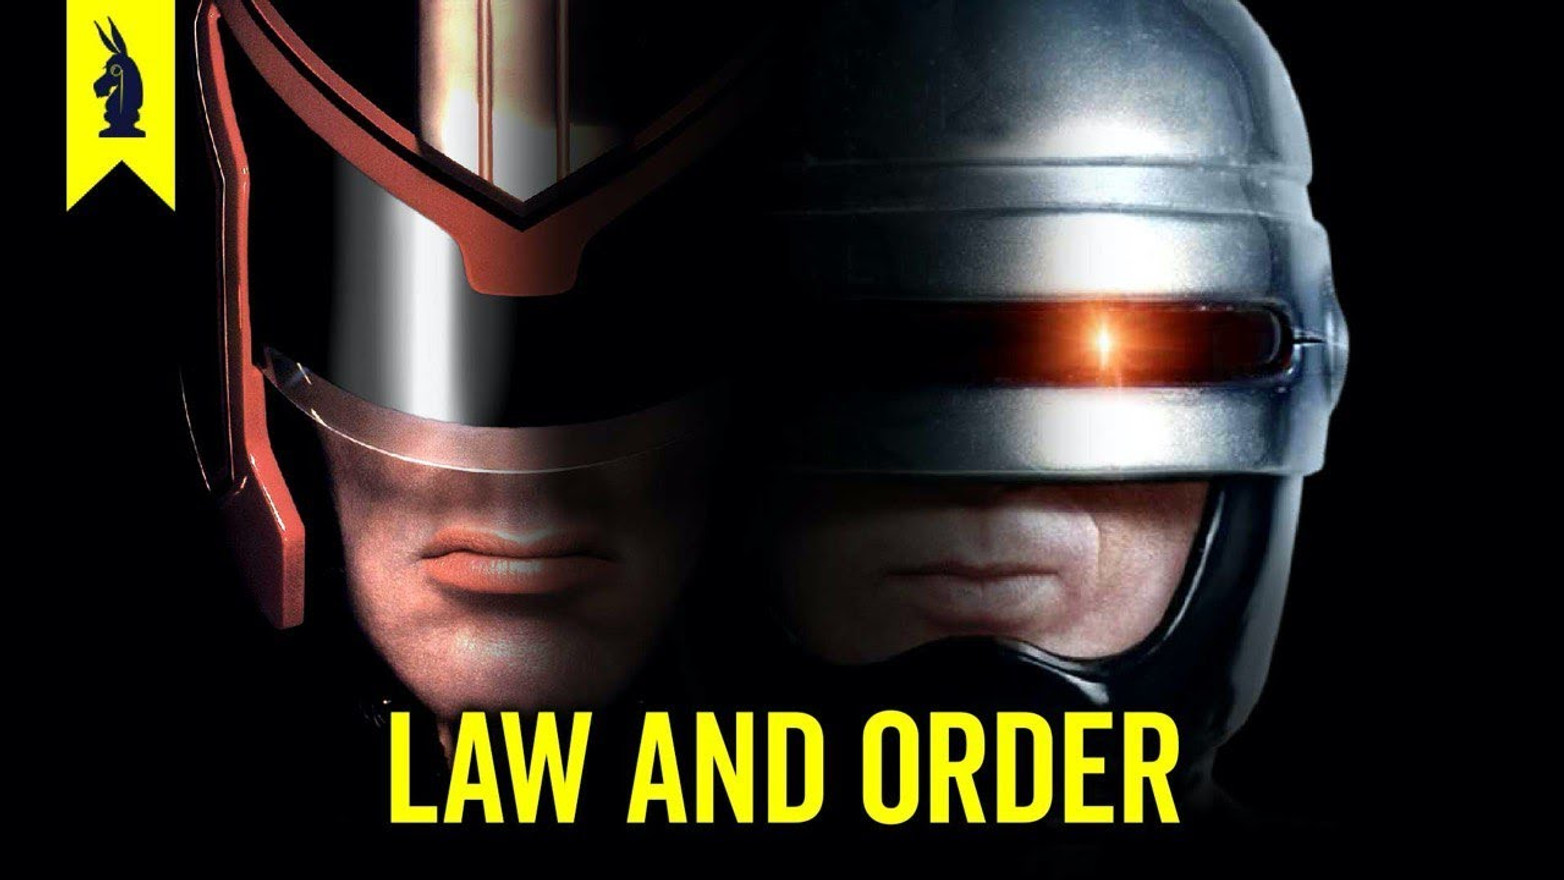 Who is the Law?